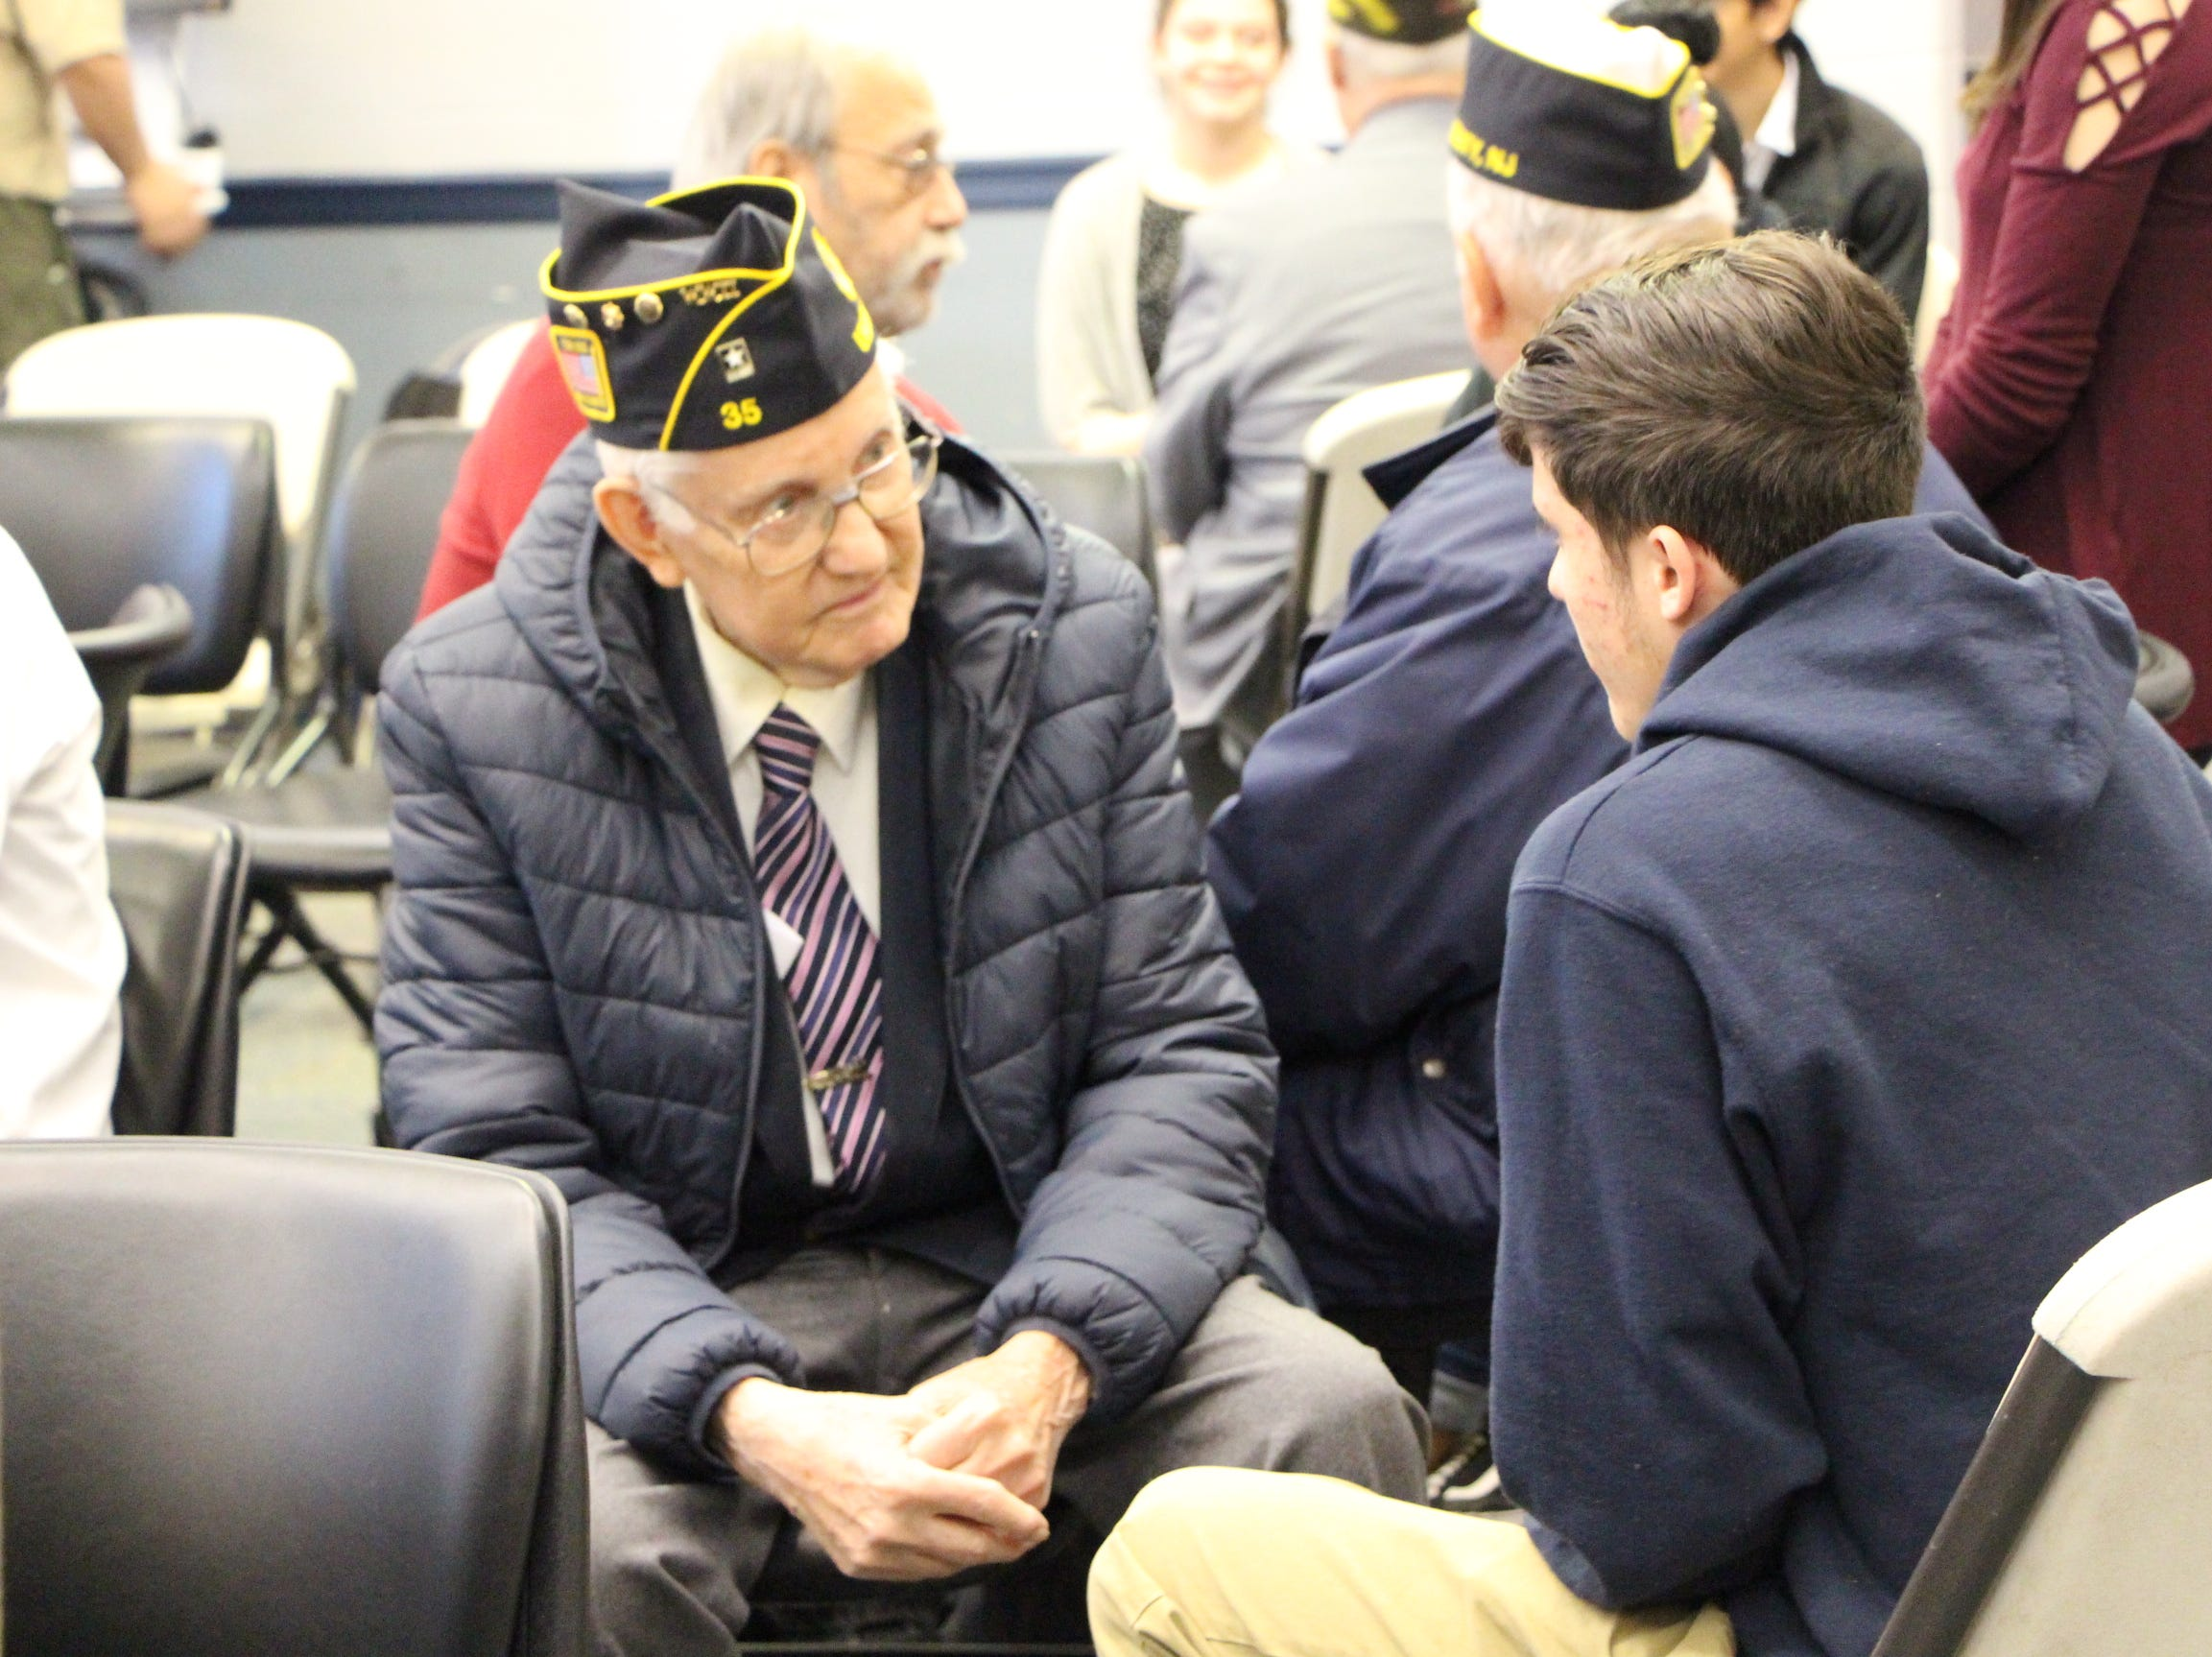 Students and veterans interact during the An Attitude of Gratitude event.